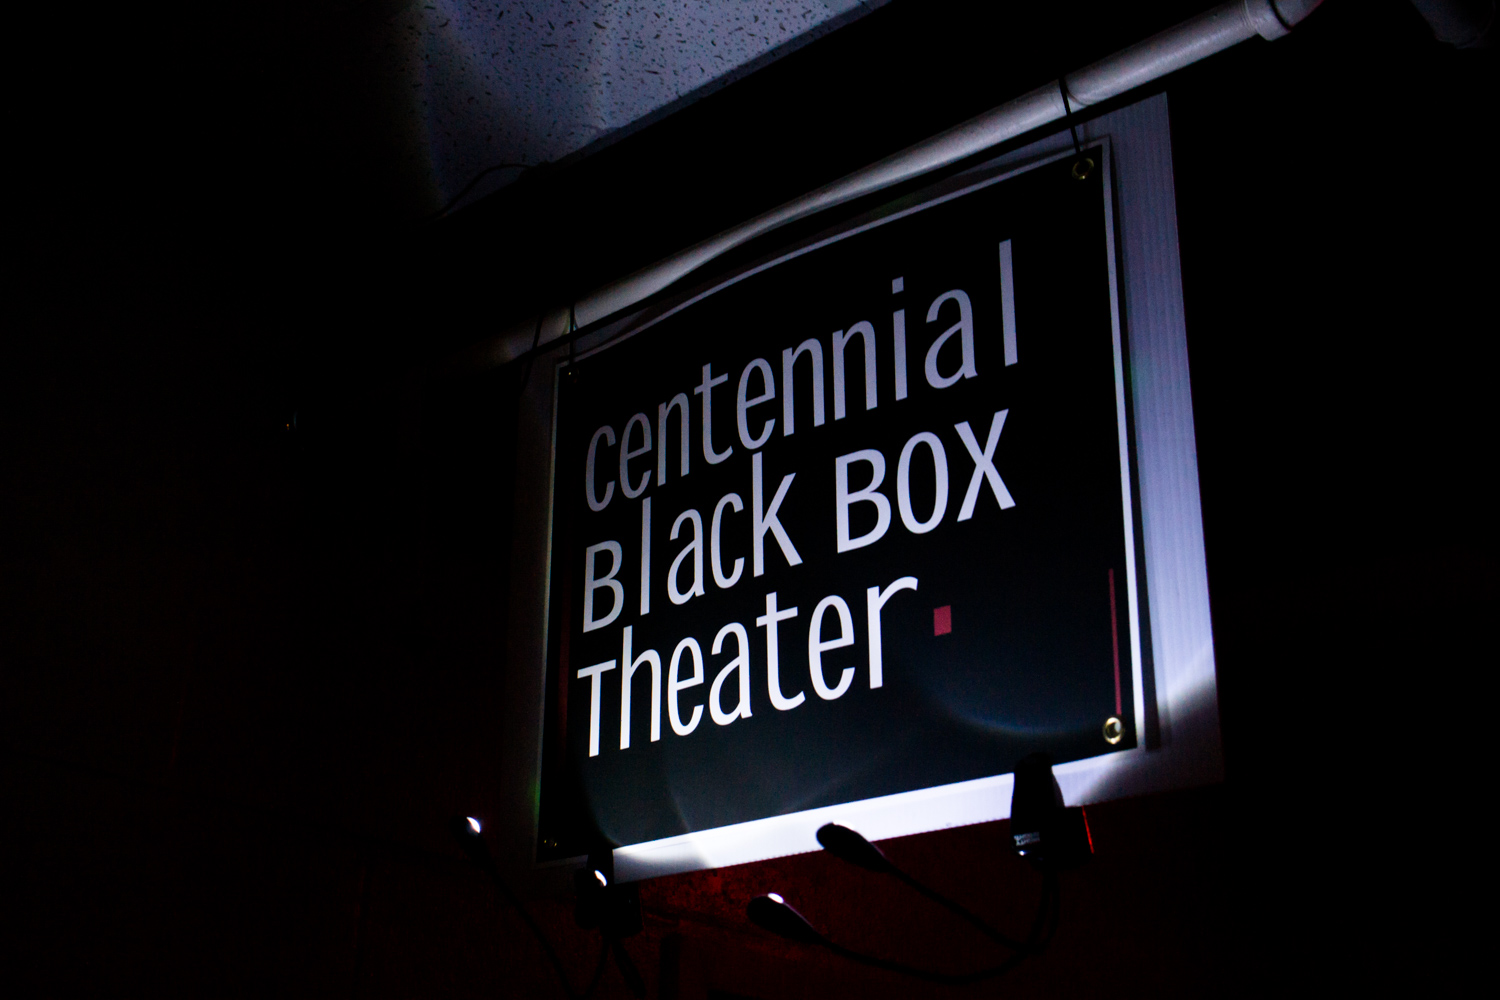 Centennial Park Black Box Theater Nashville Live